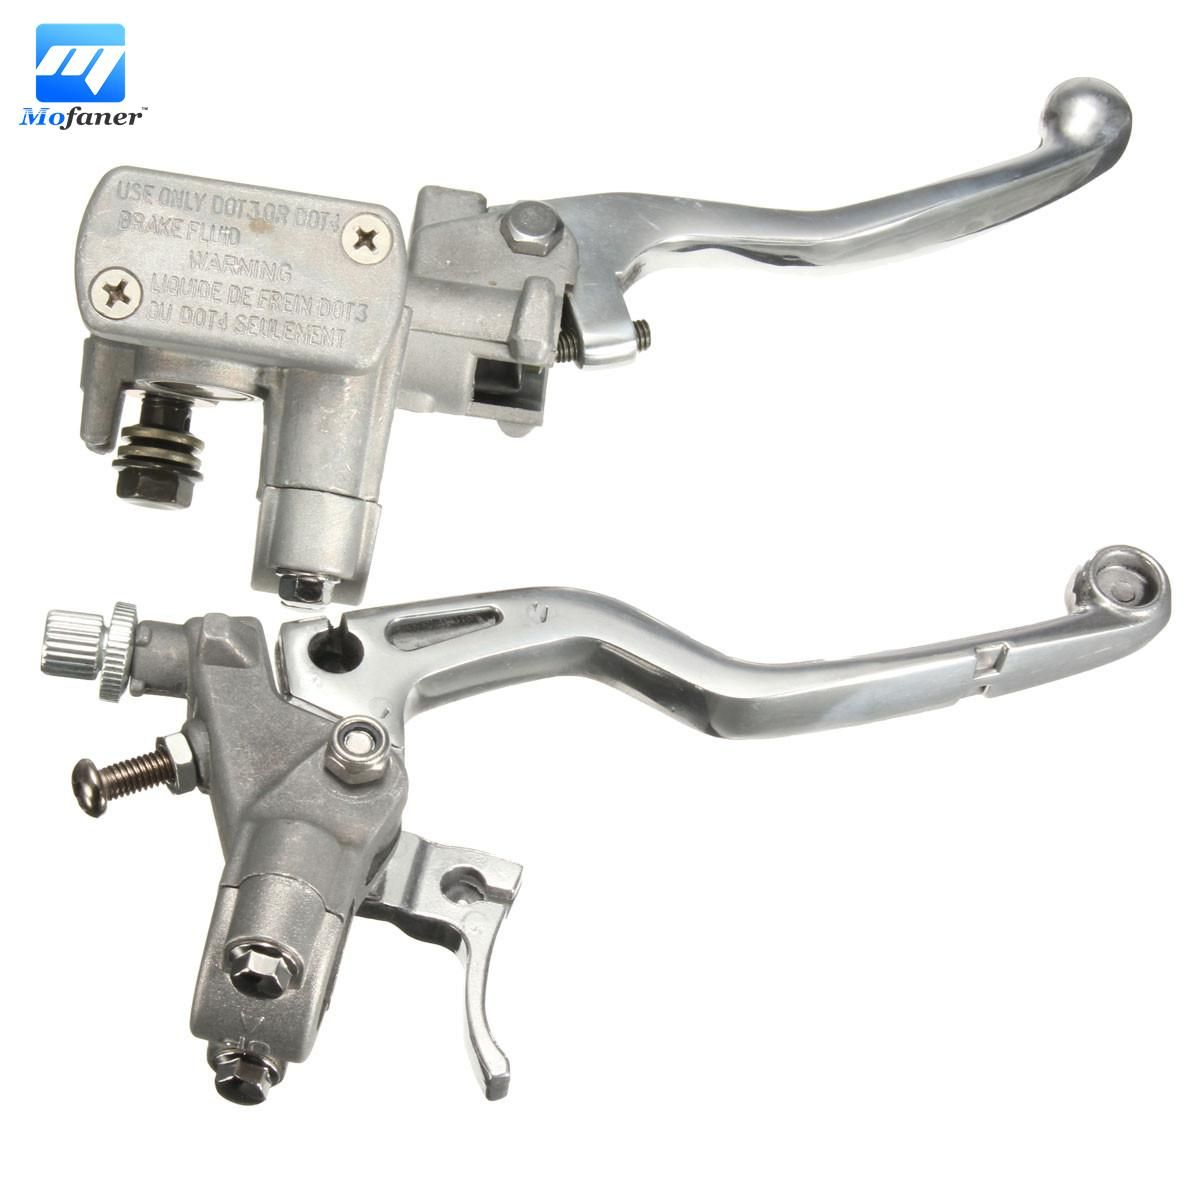 Clutch lever Pair Black Aluminum Motorcycle Brake /& Clutch Lever For Honda CG 125 Cable Front Brake Motorcycle Accessories